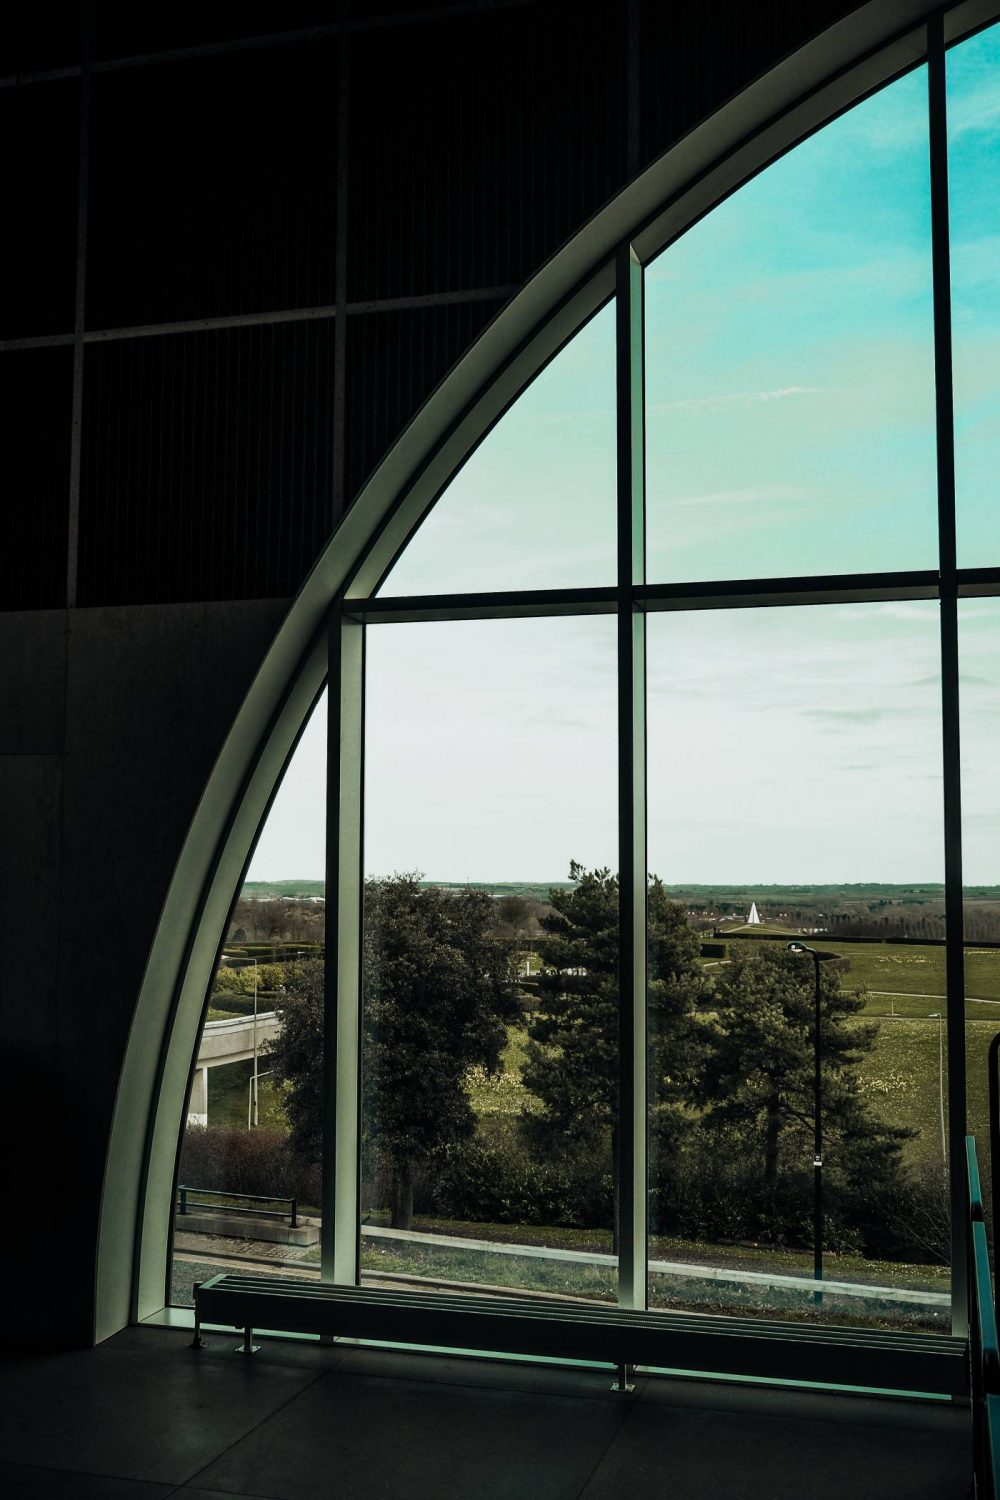 The Sky Room at MK Gallery Cafe with a view over Campbell Park